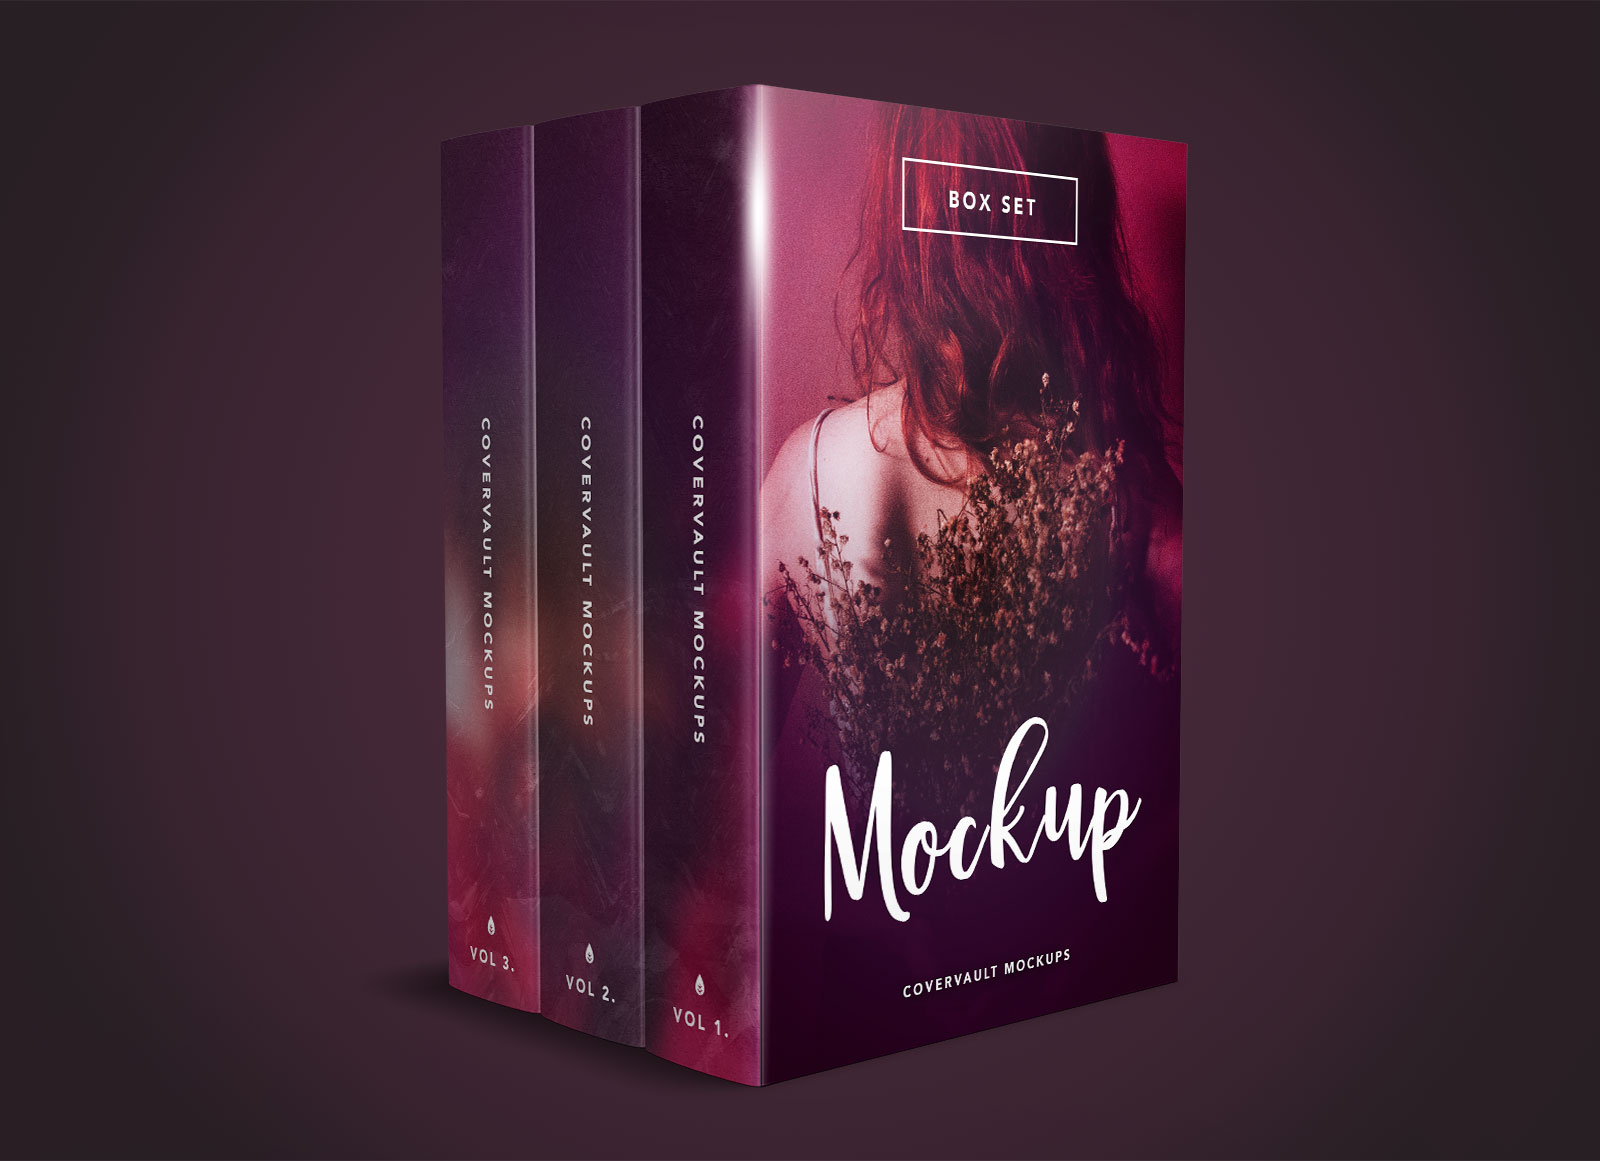 Free-3-Books-Set-PSD-Mockup-Template